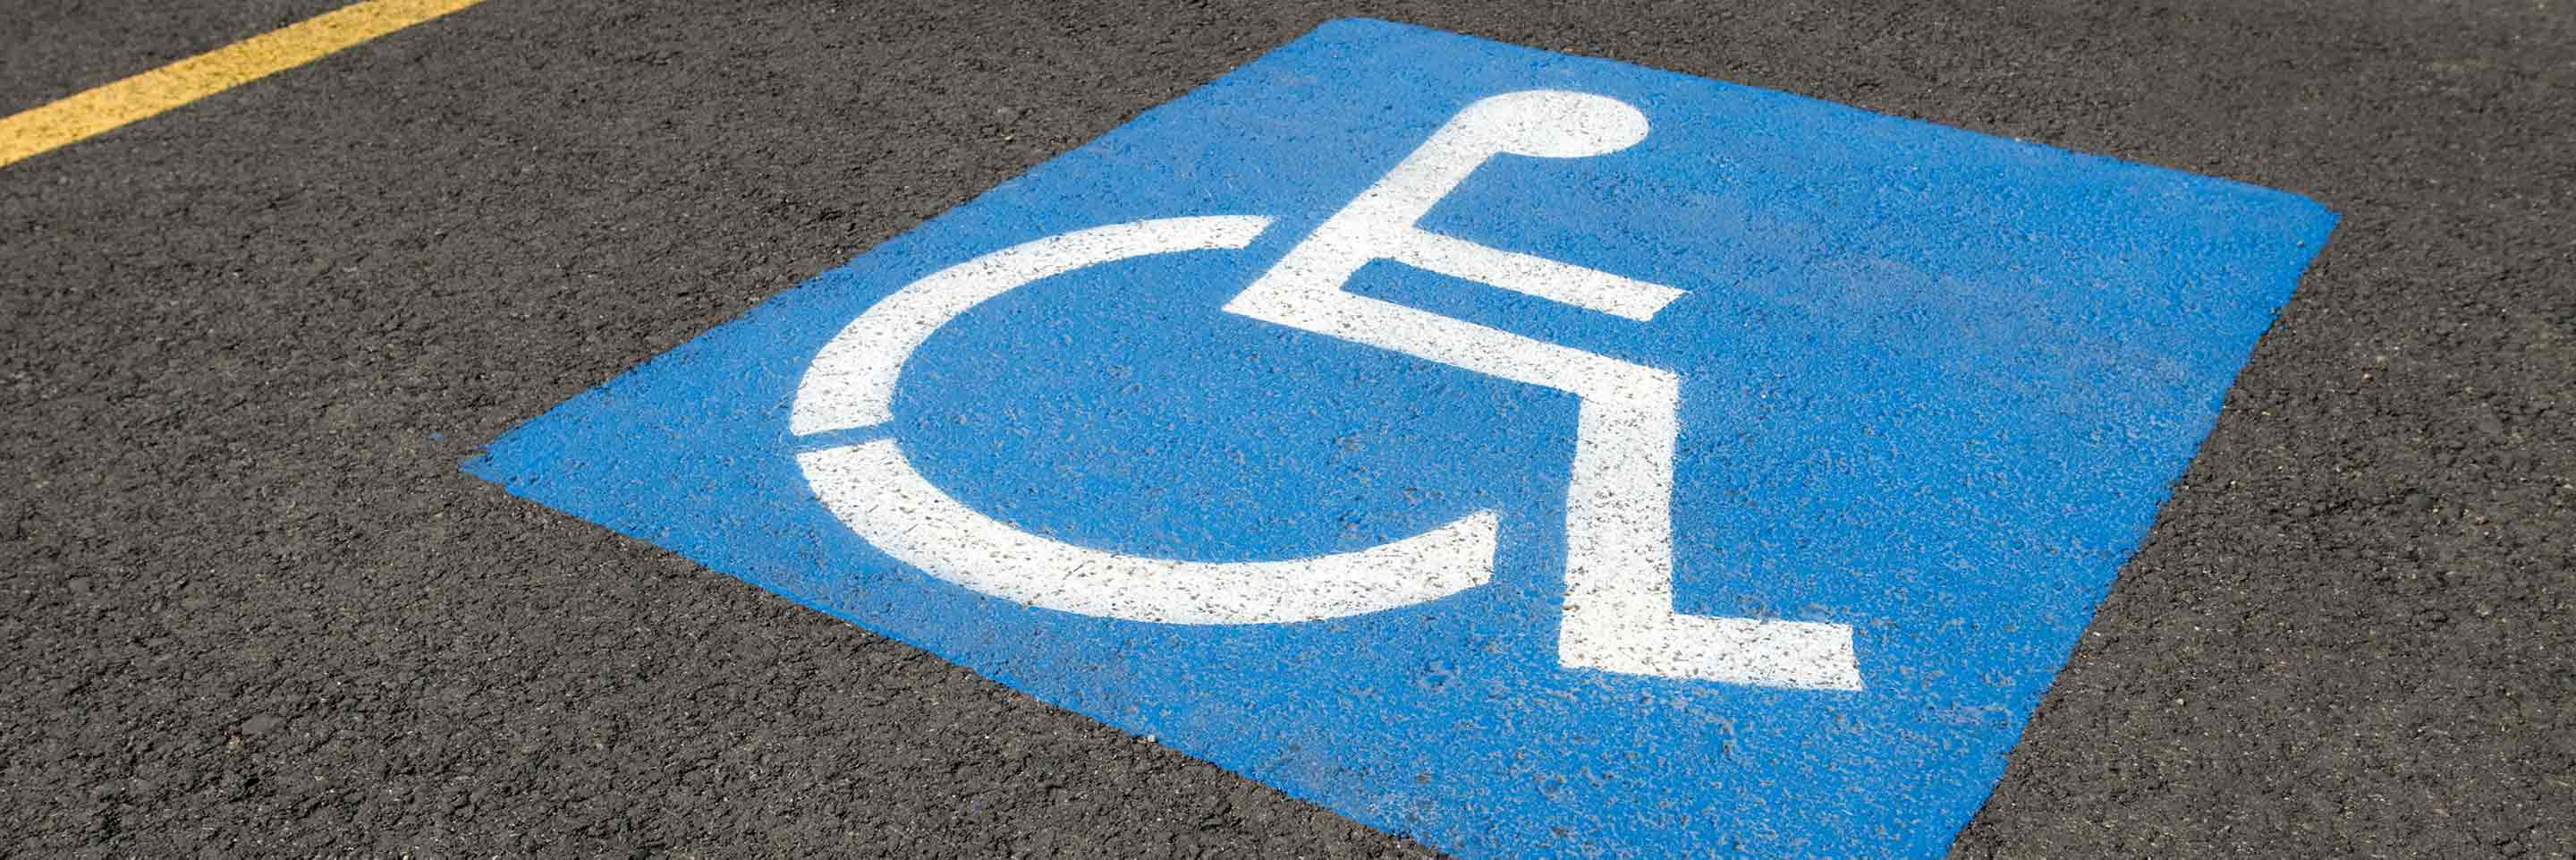 Blue wheelchair icon indicating a disabled parking spot